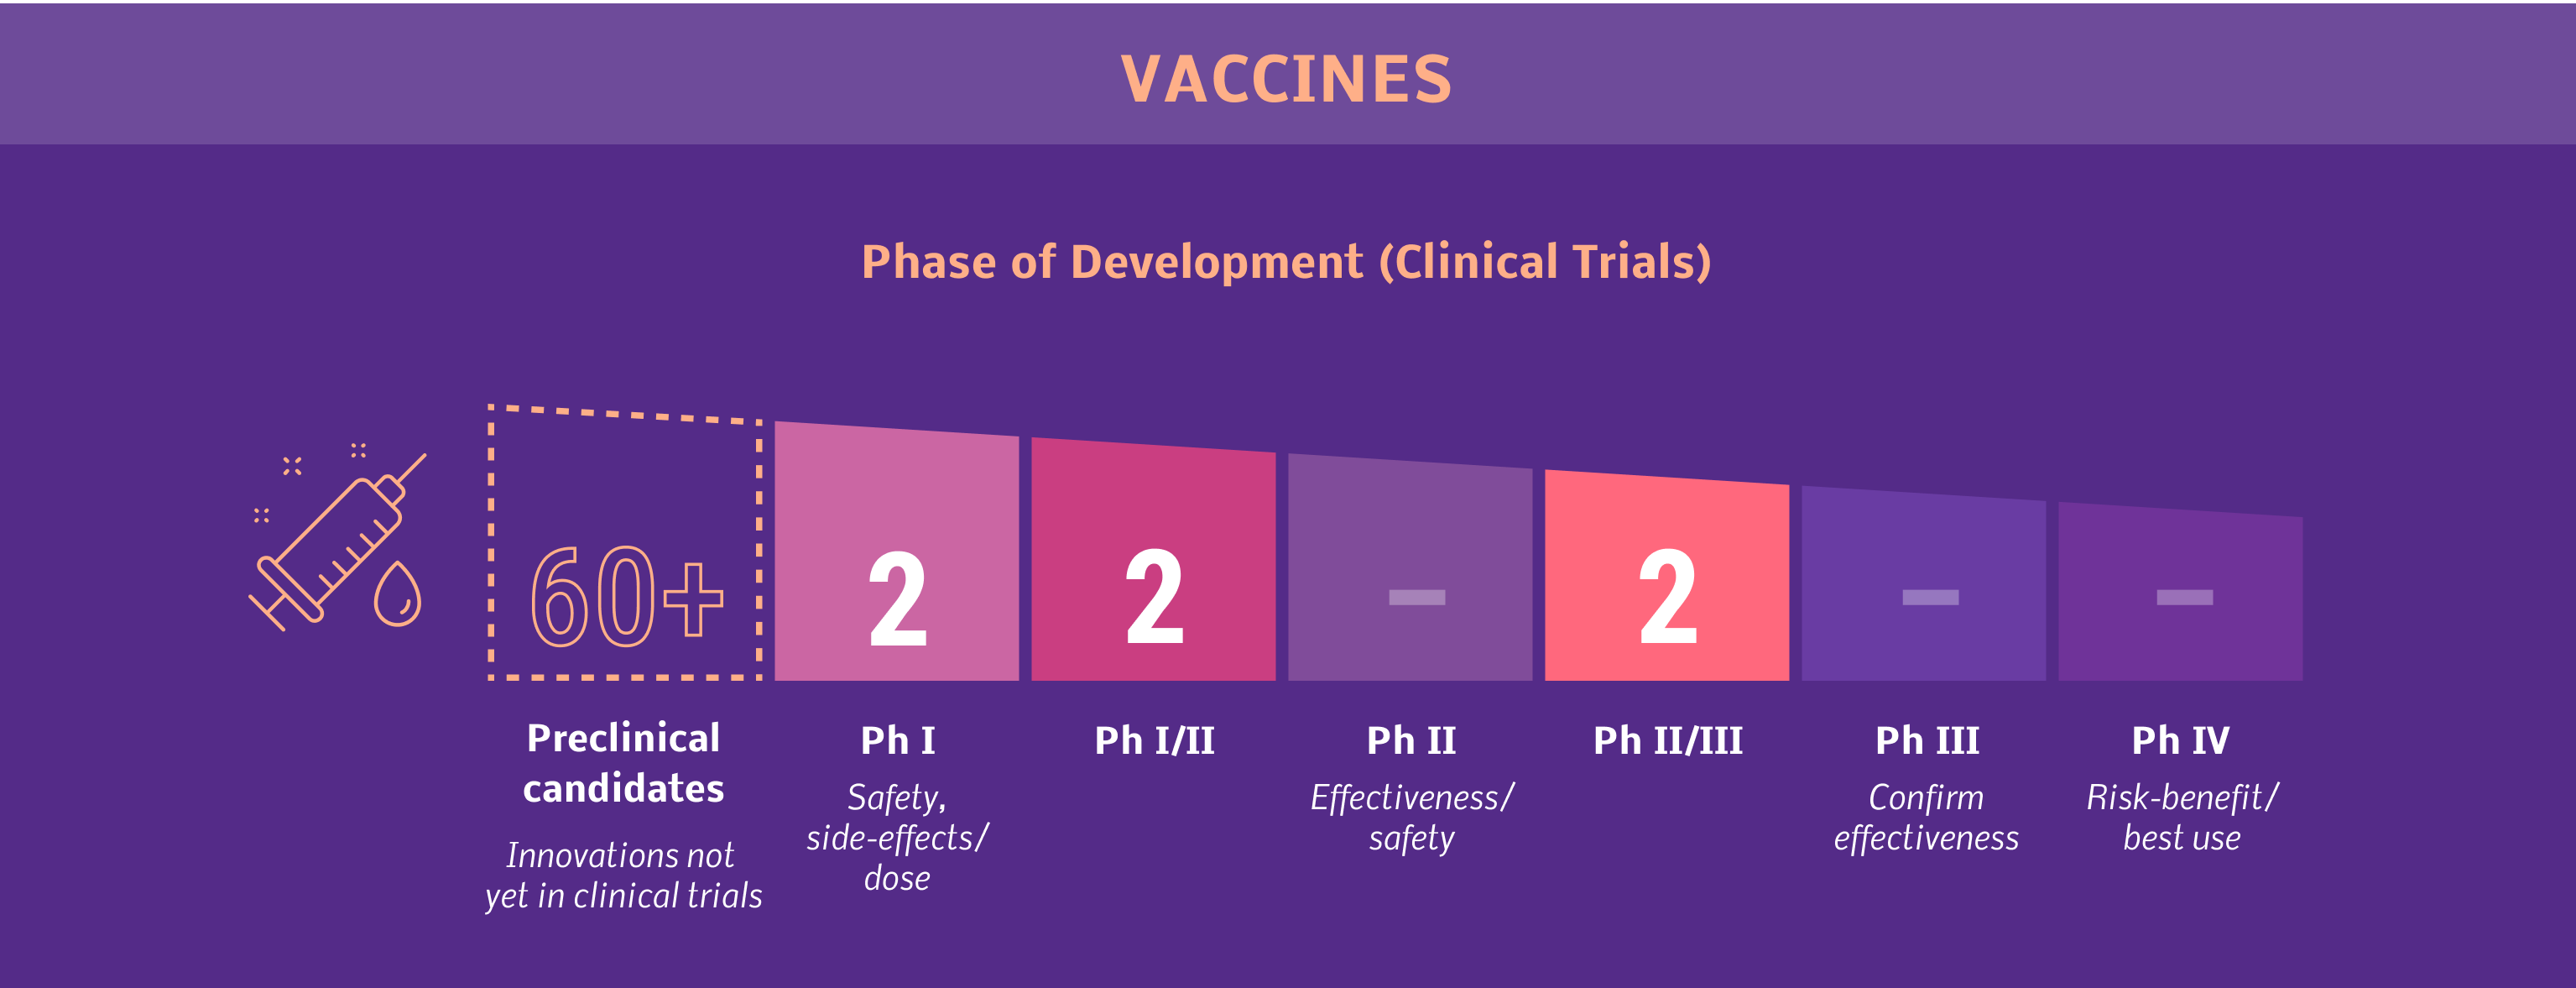 COVID-19 Vaccines Phases of Development